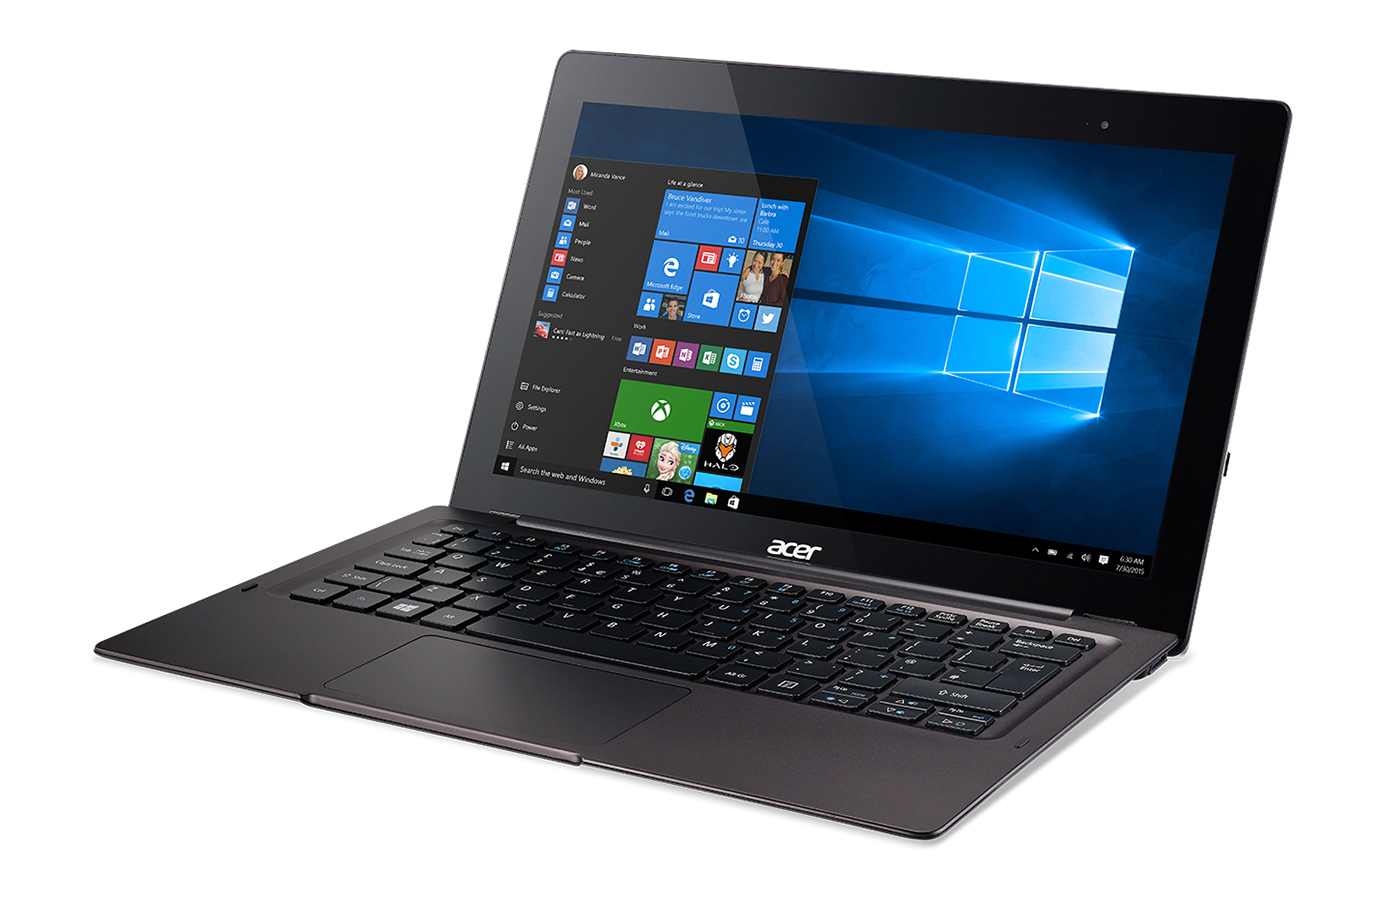 Acers Aspire Switch 12 S A Convertible Laptop With USB